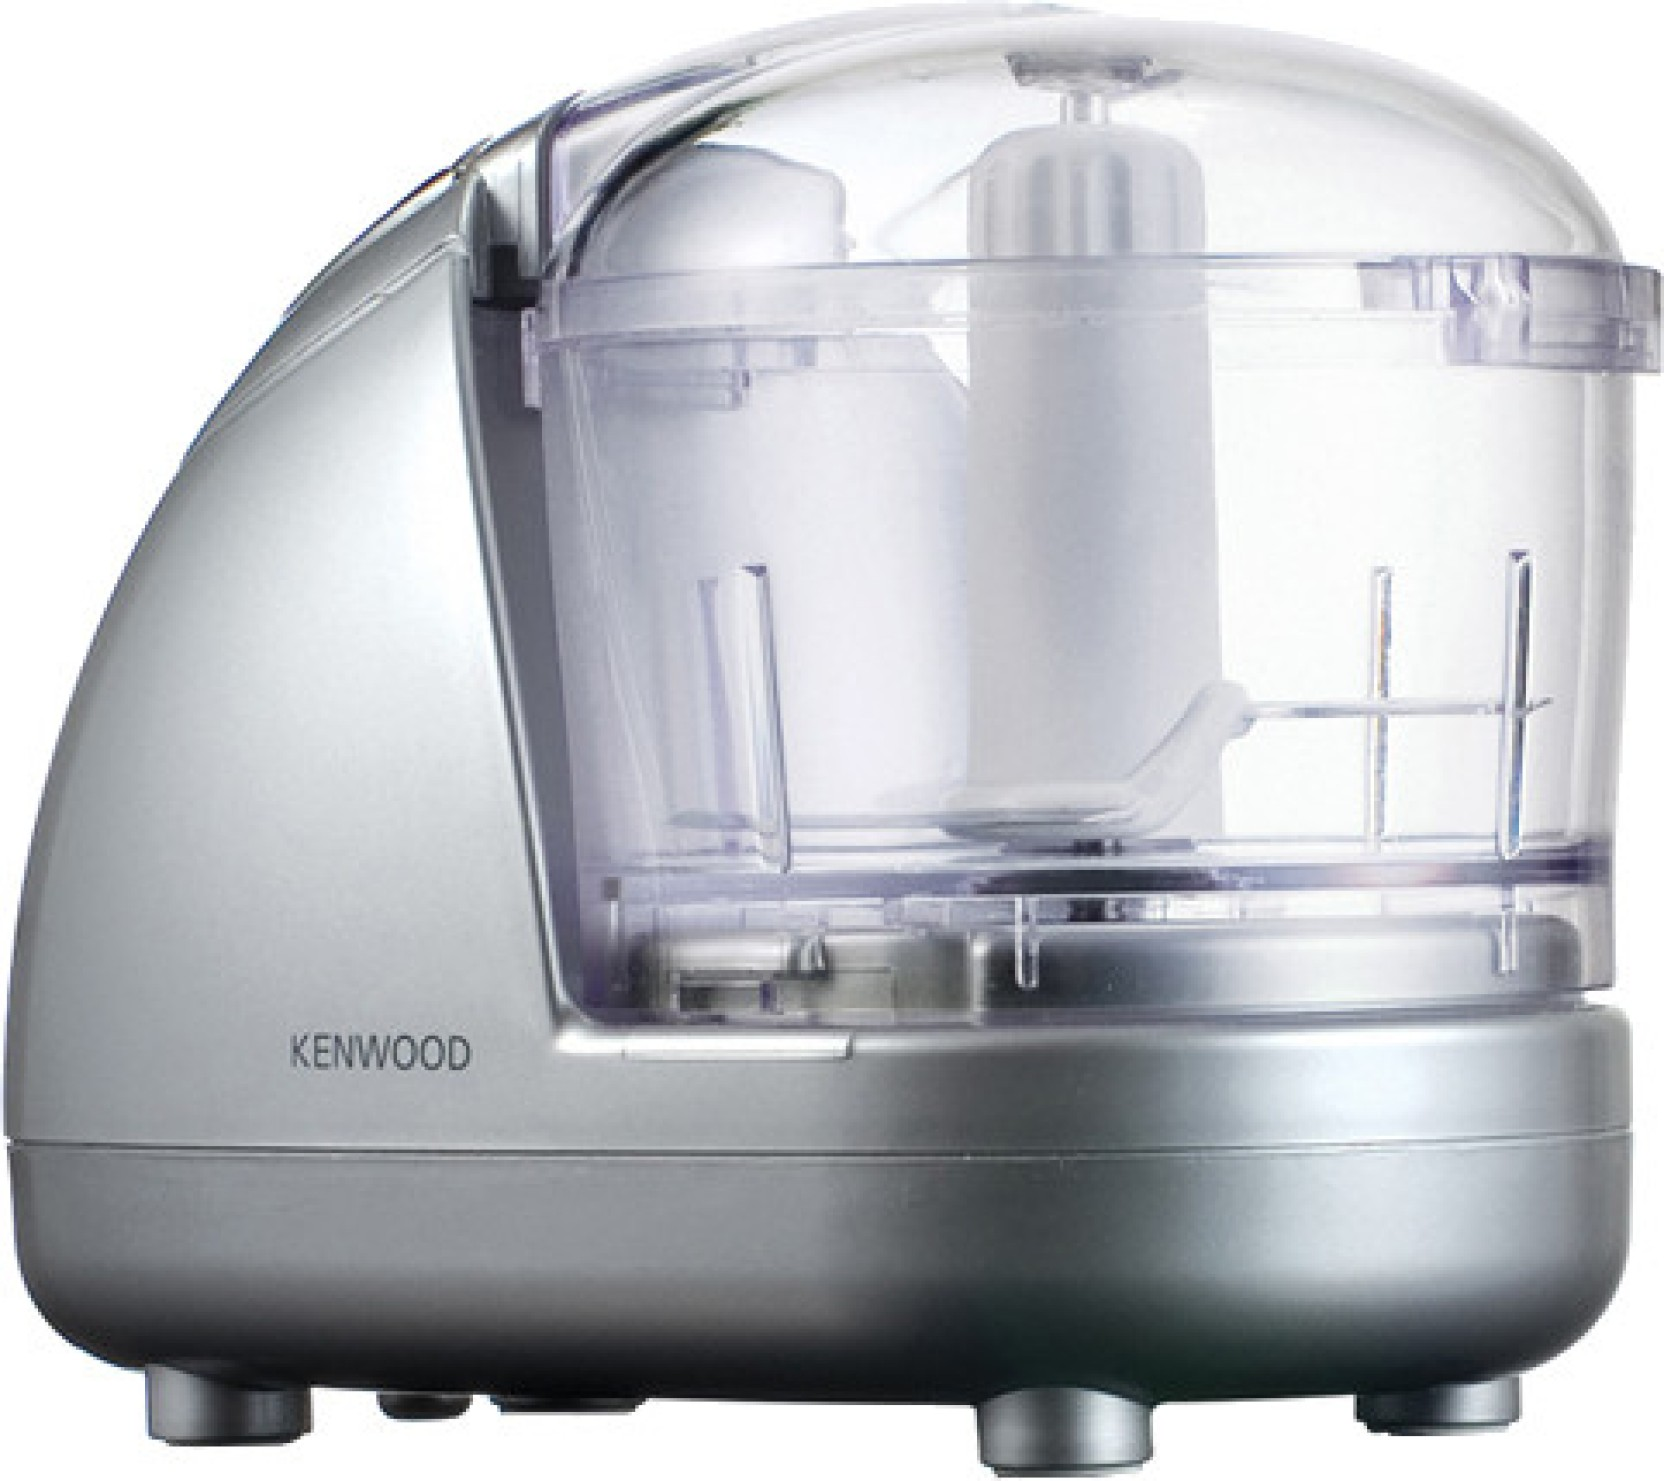 Kenwood Ch 185 300 W Chopper Price In India Buy Hand Mixer Philips Hr 1530 Add To Cart